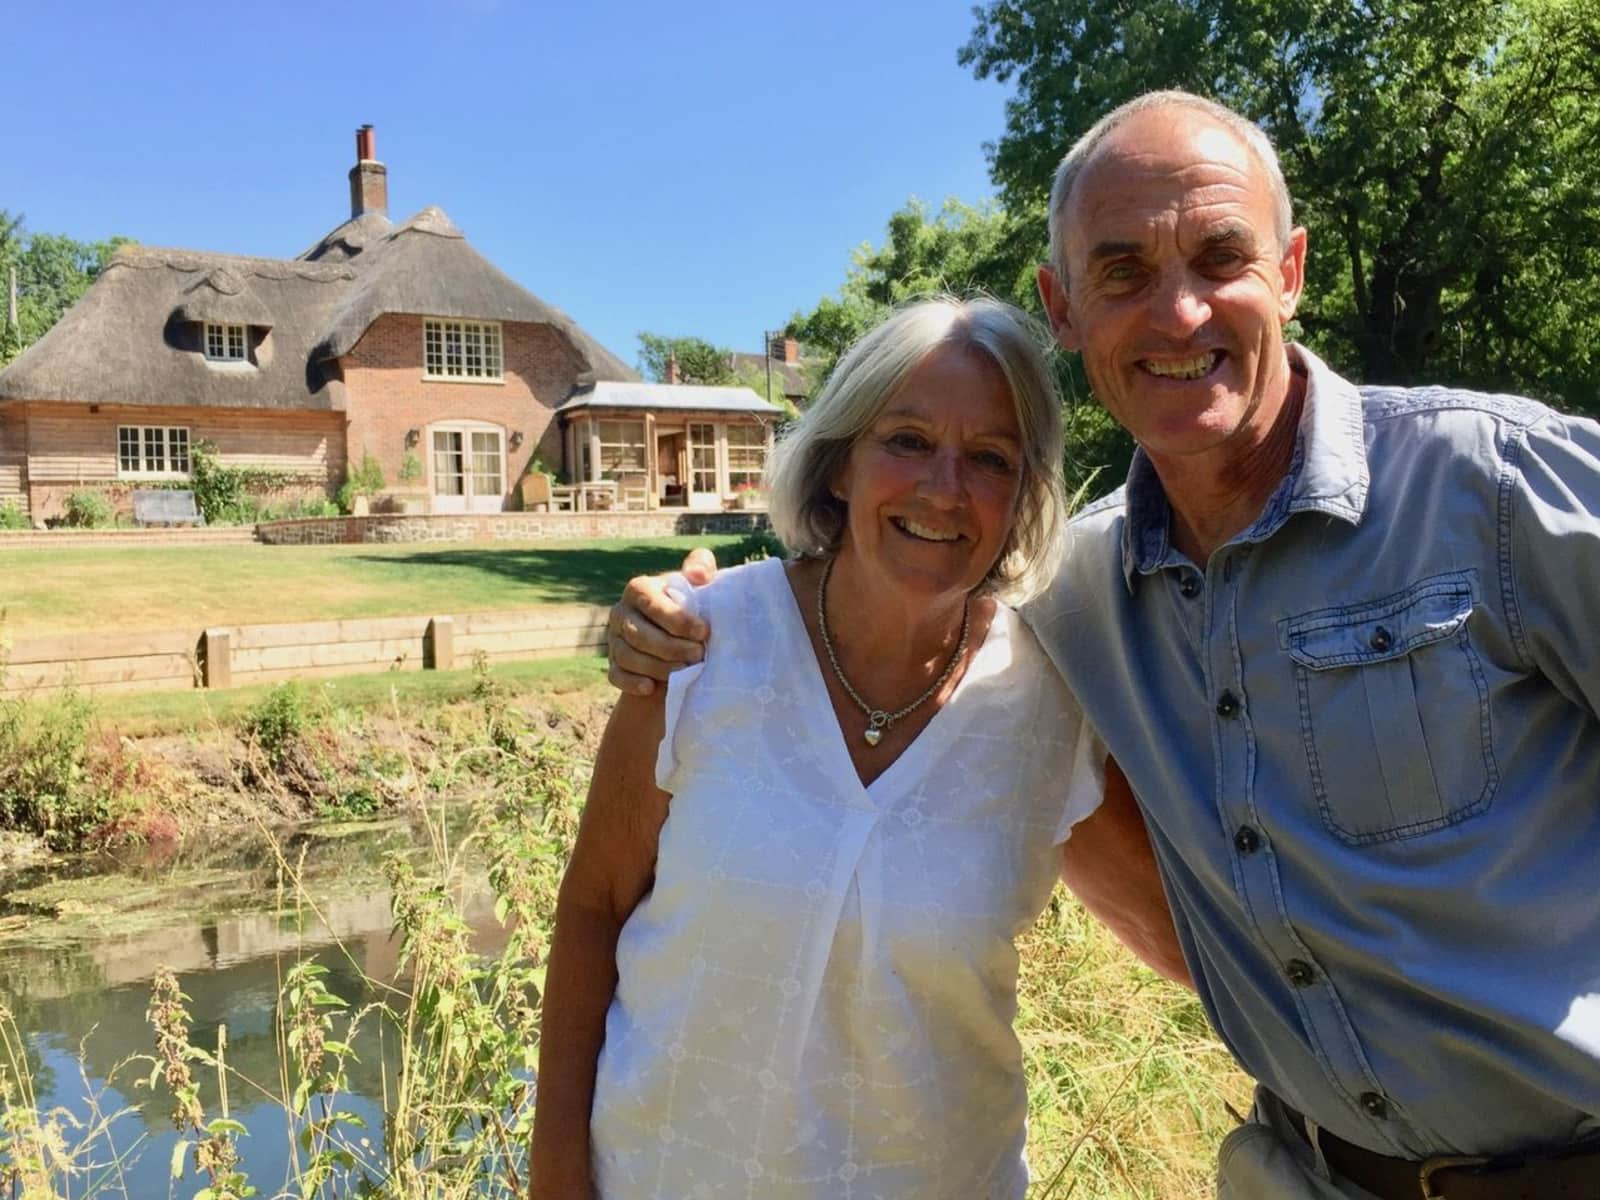 Sue & Julian from Farnham, United Kingdom